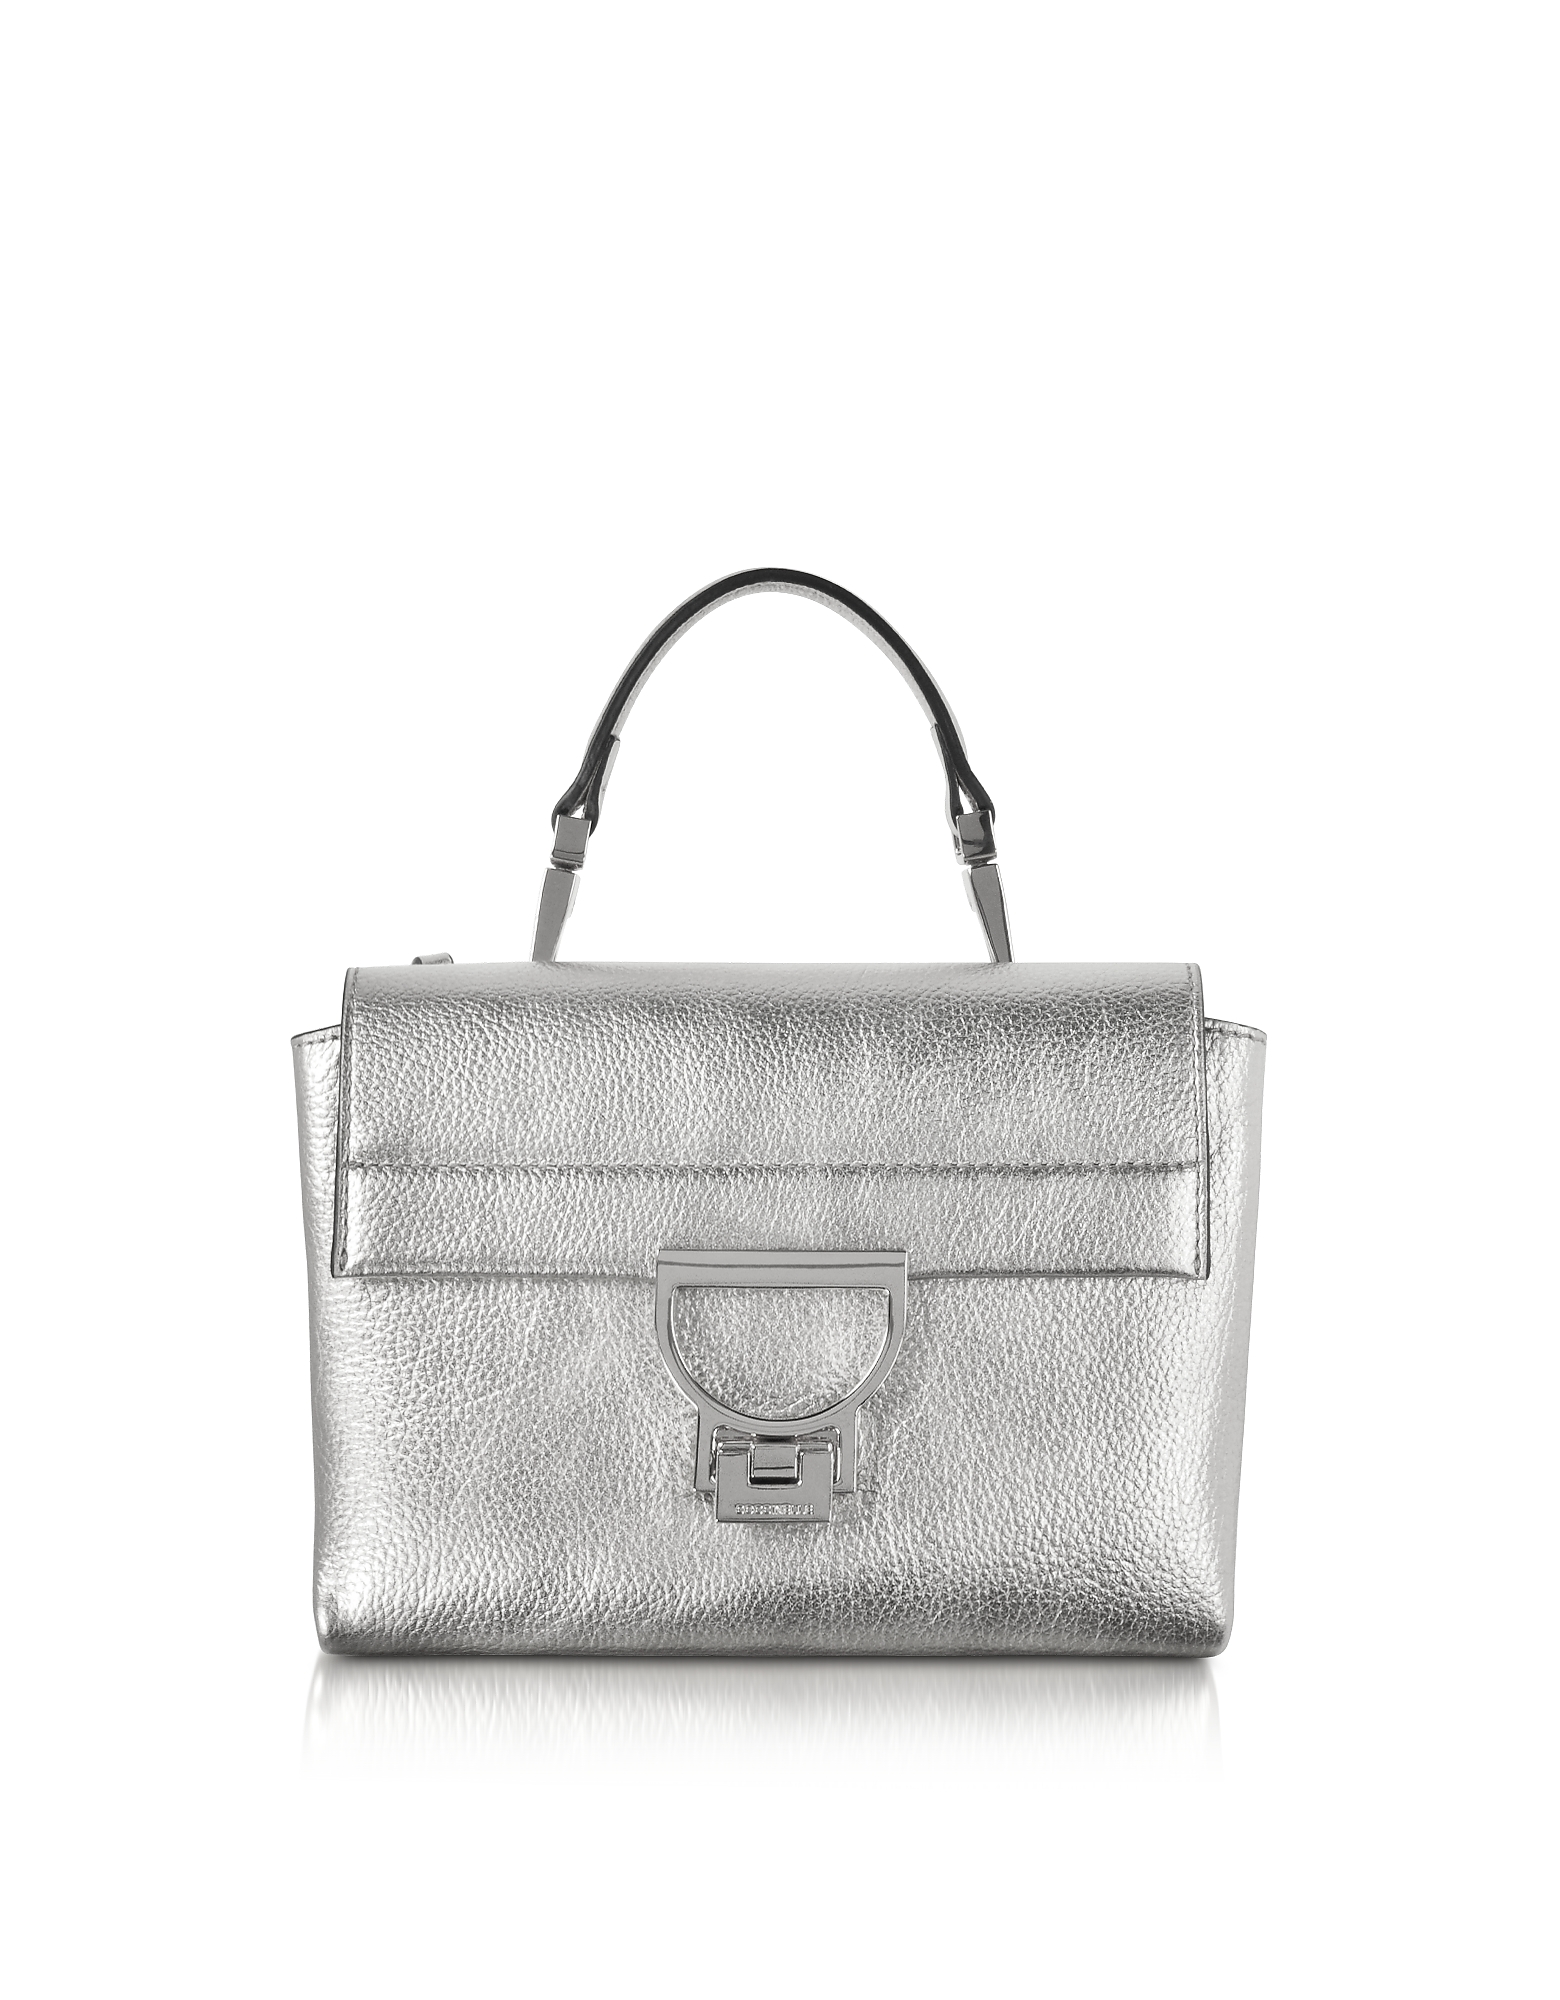 Coccinelle Handbags, Silver Pebbled Leather Arlettis Mini Bag w/Shoulder Strap